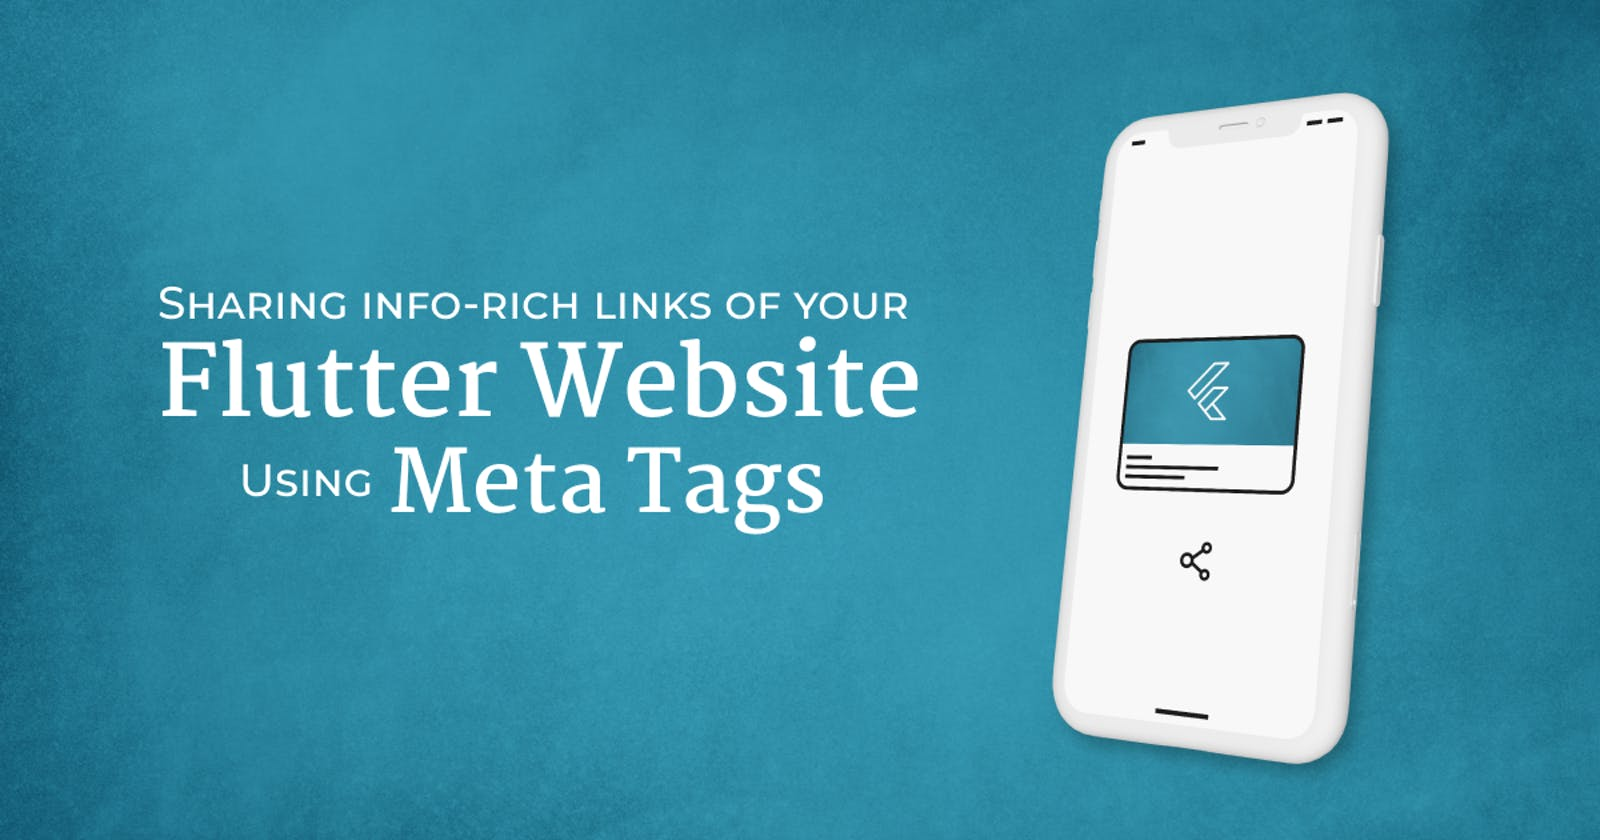 Sharing info-rich links of your Flutter Website using Meta Tags